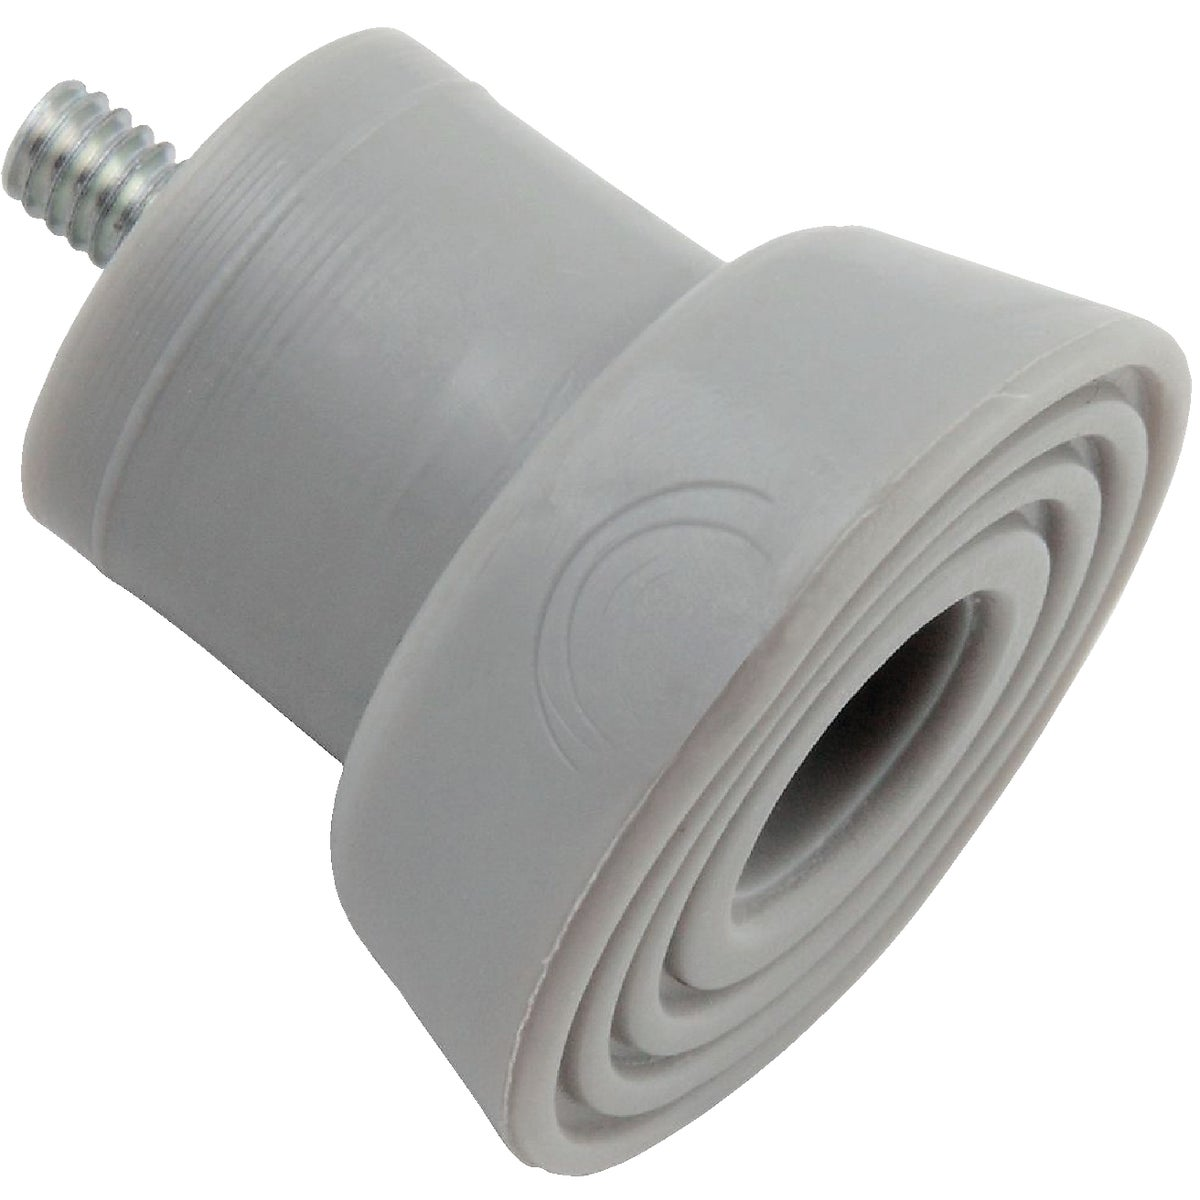 DOOR STOP TIP W/SCREW - N225557 by National Mfg Co